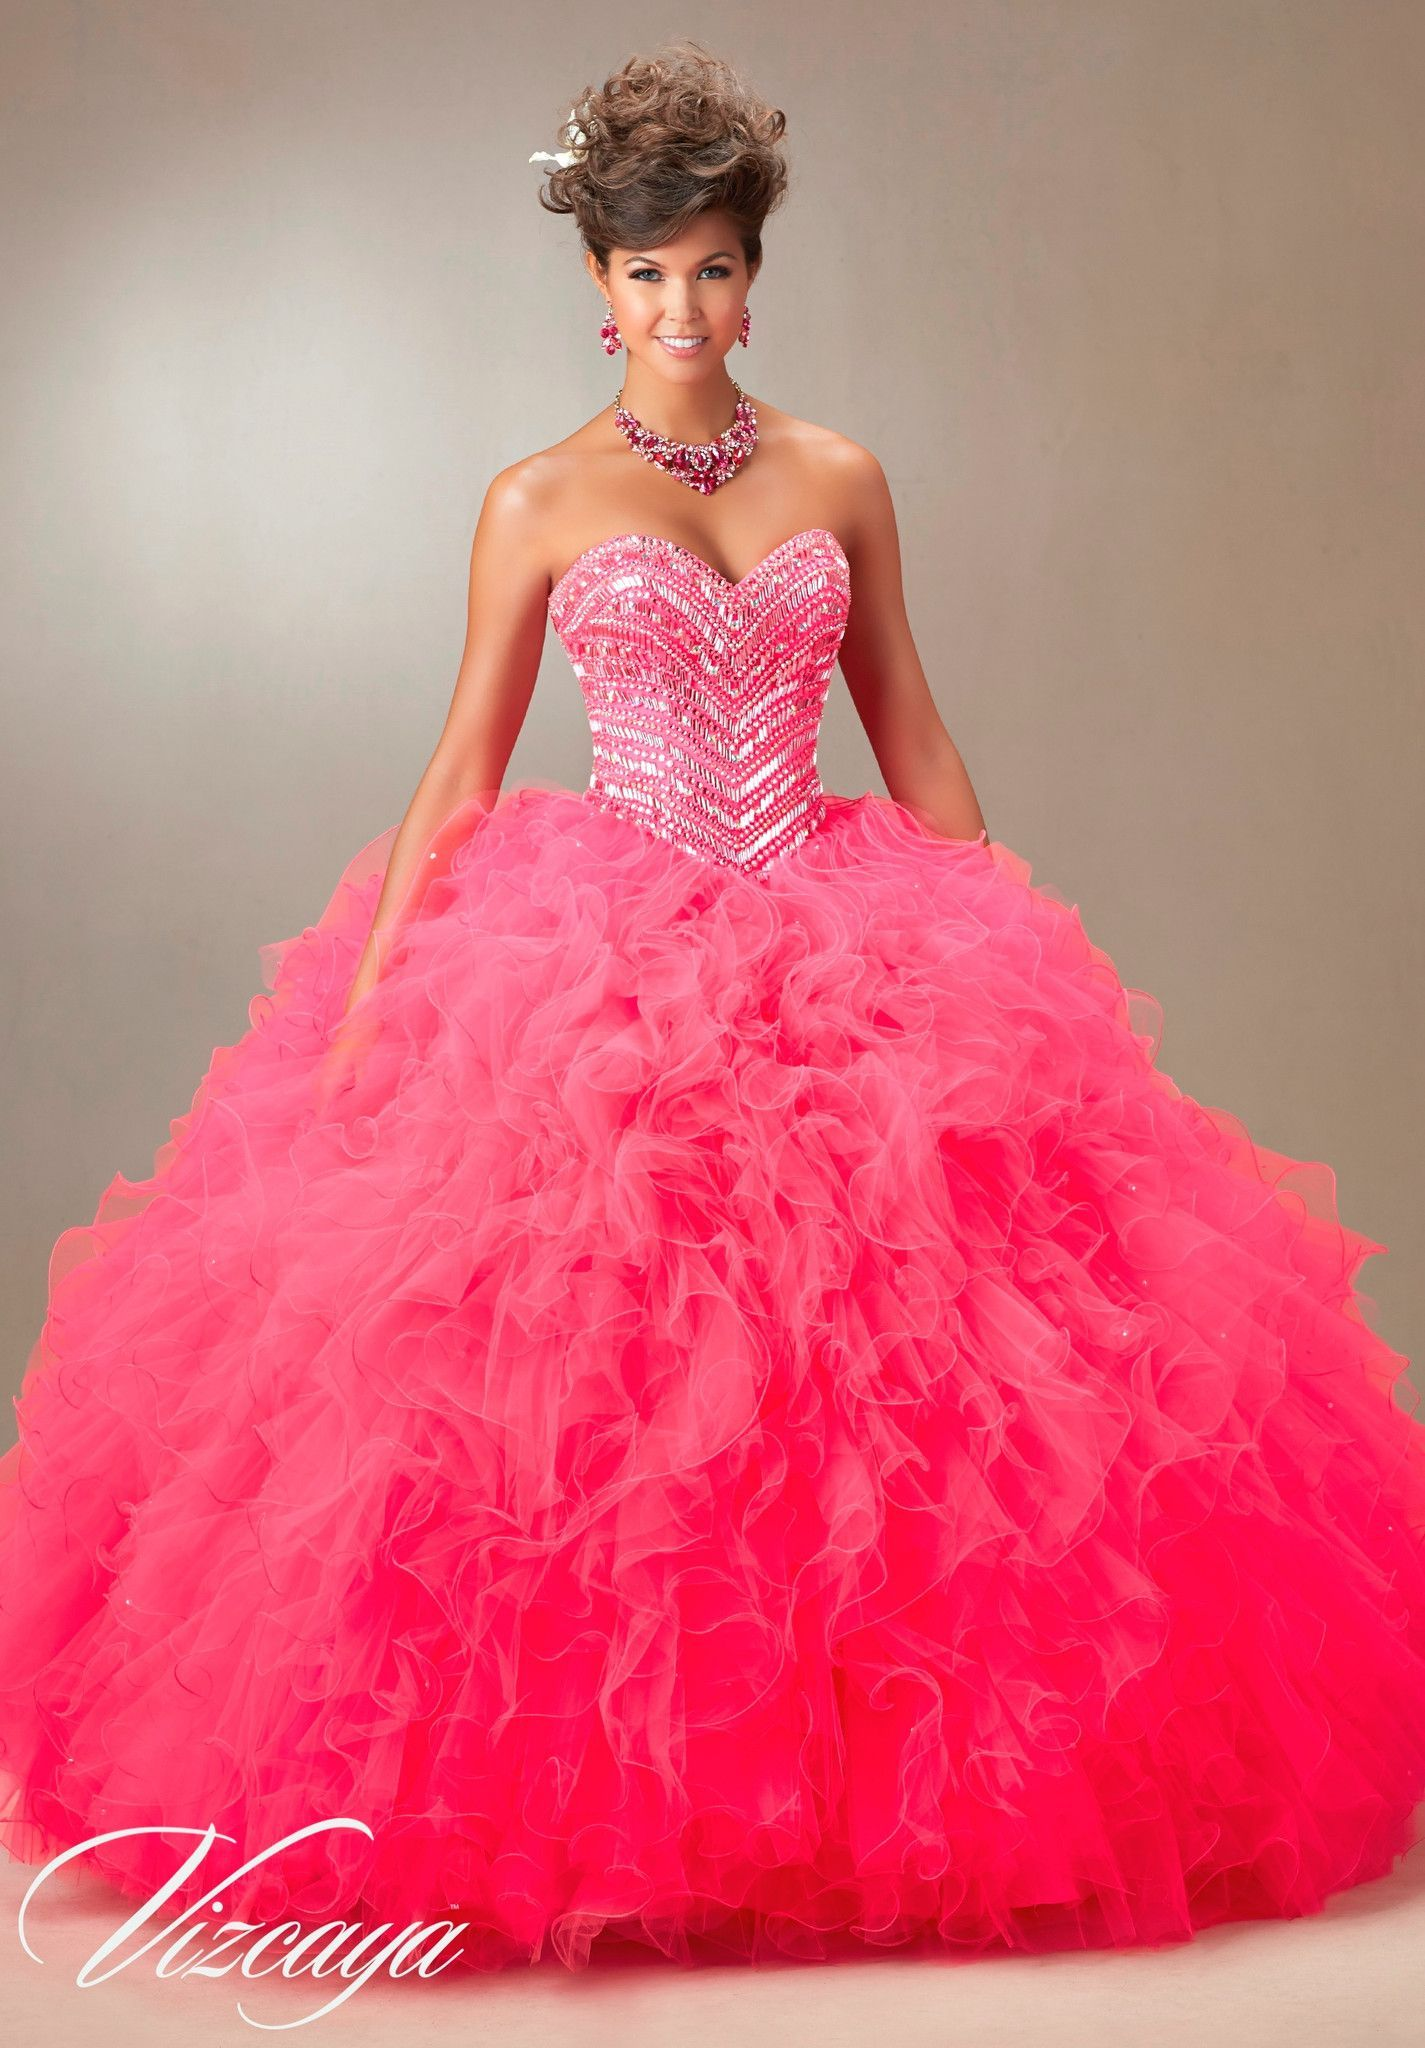 Mori Lee Vizcaya Quinceanera Dress Style 89072 is made for girls who ...